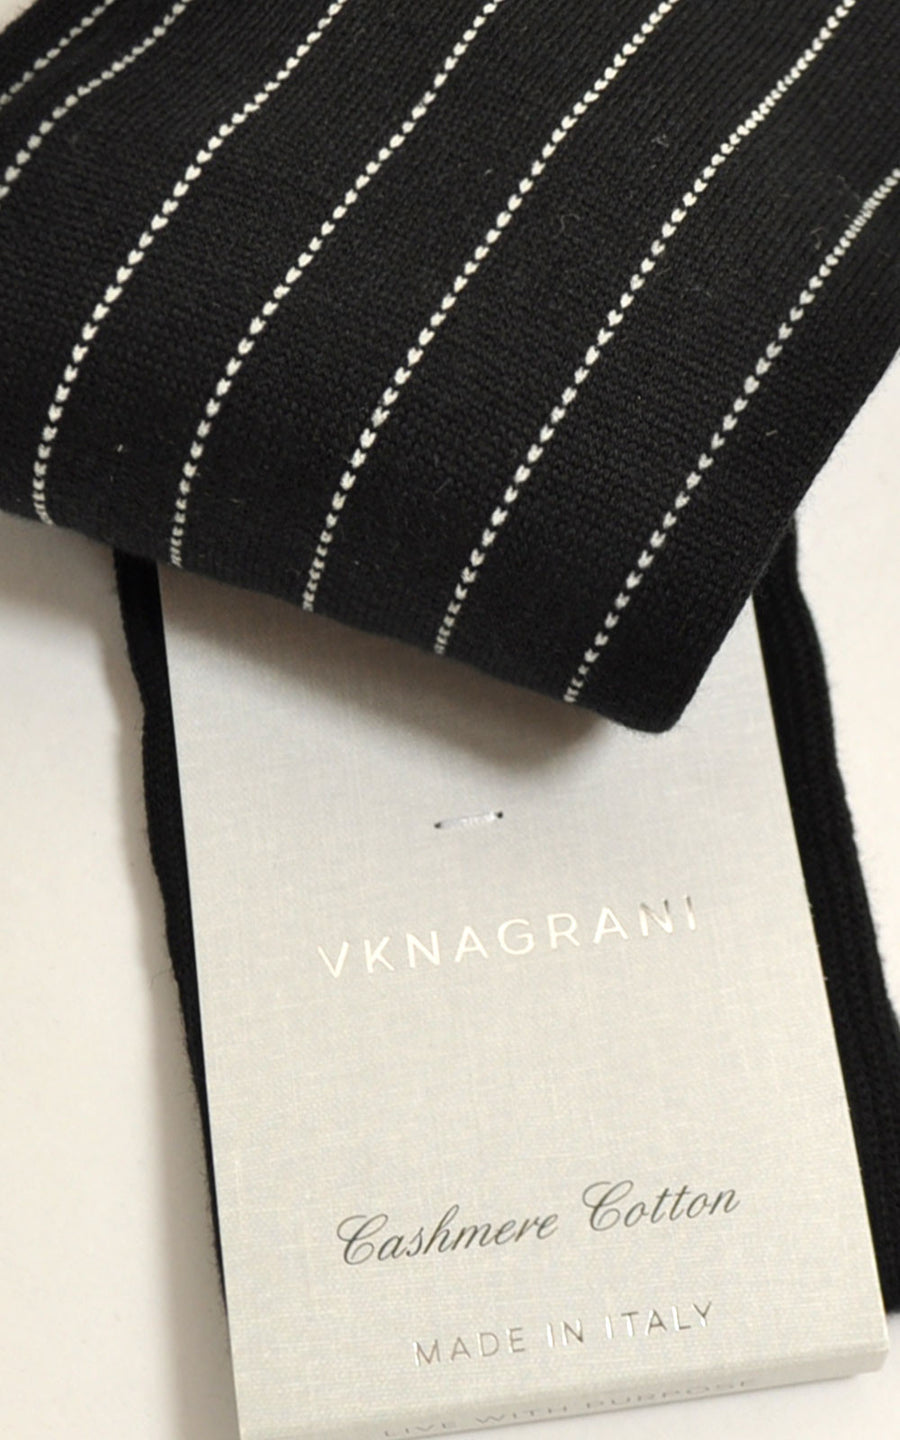 VK Nagrani Socks Cashmere Cotton Black Pinstripe